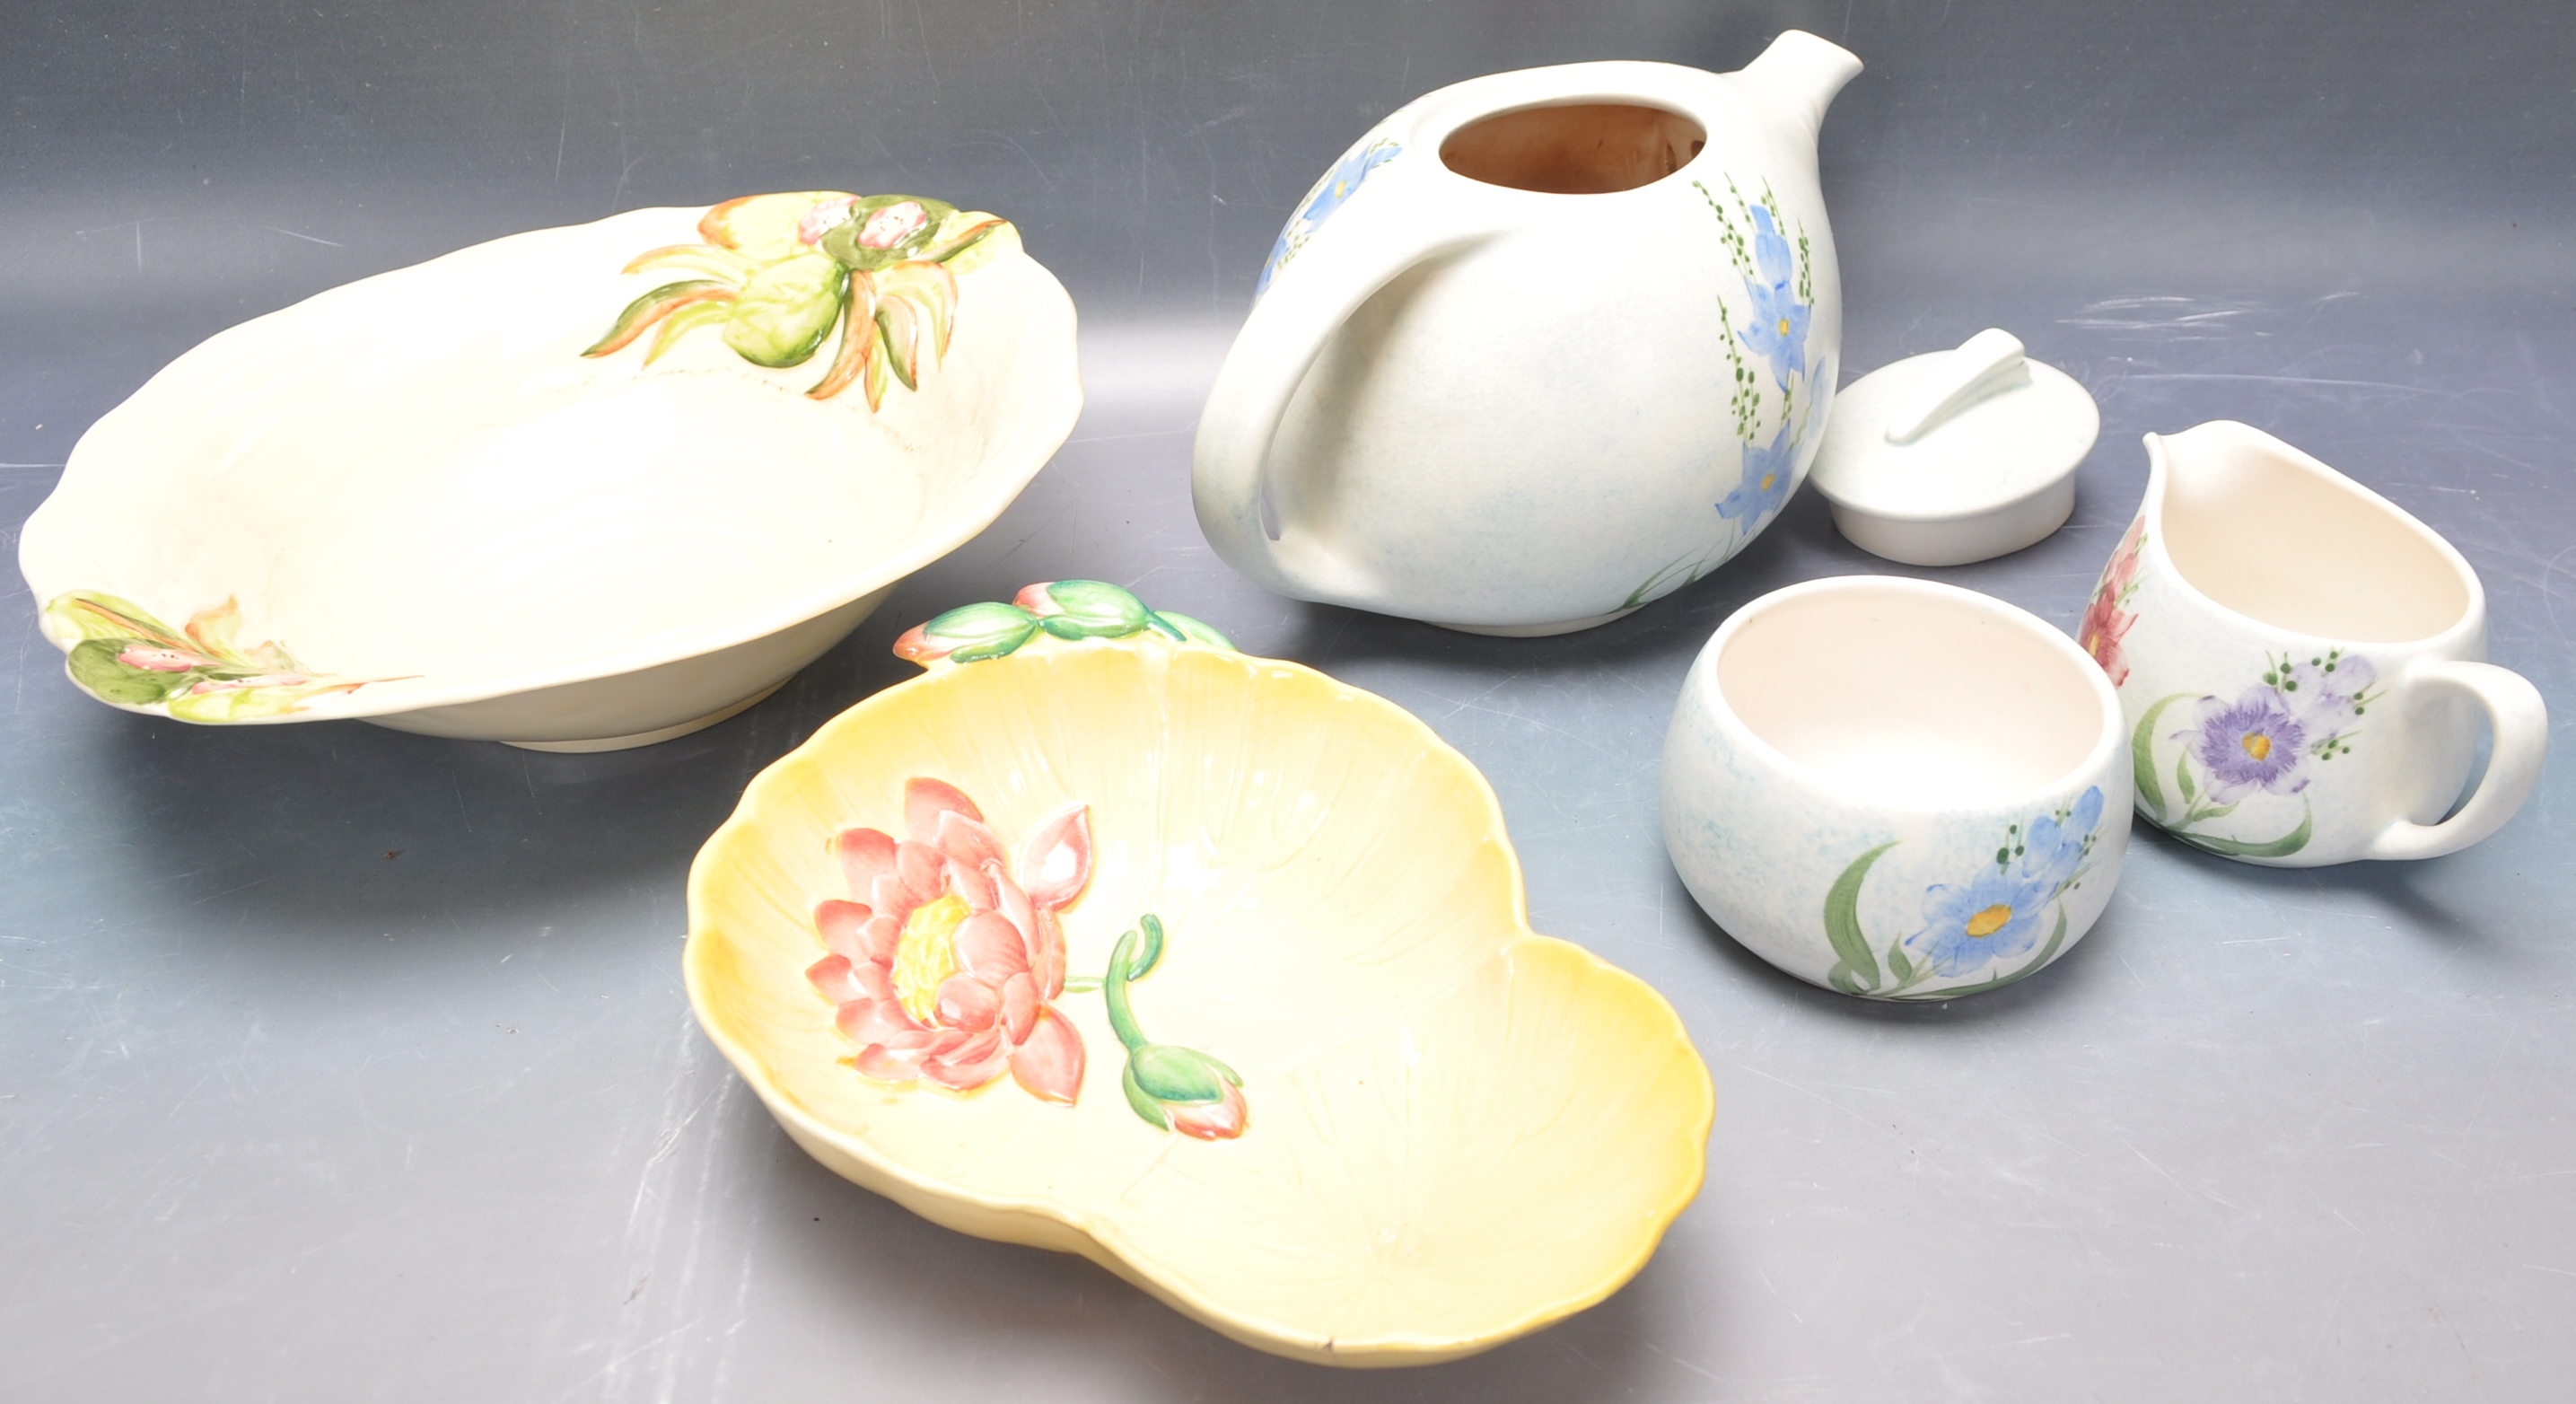 VINTAGE MID 20TH CENTURY CLARICE CLIFF BOWL WITH OTHERS - Image 2 of 8